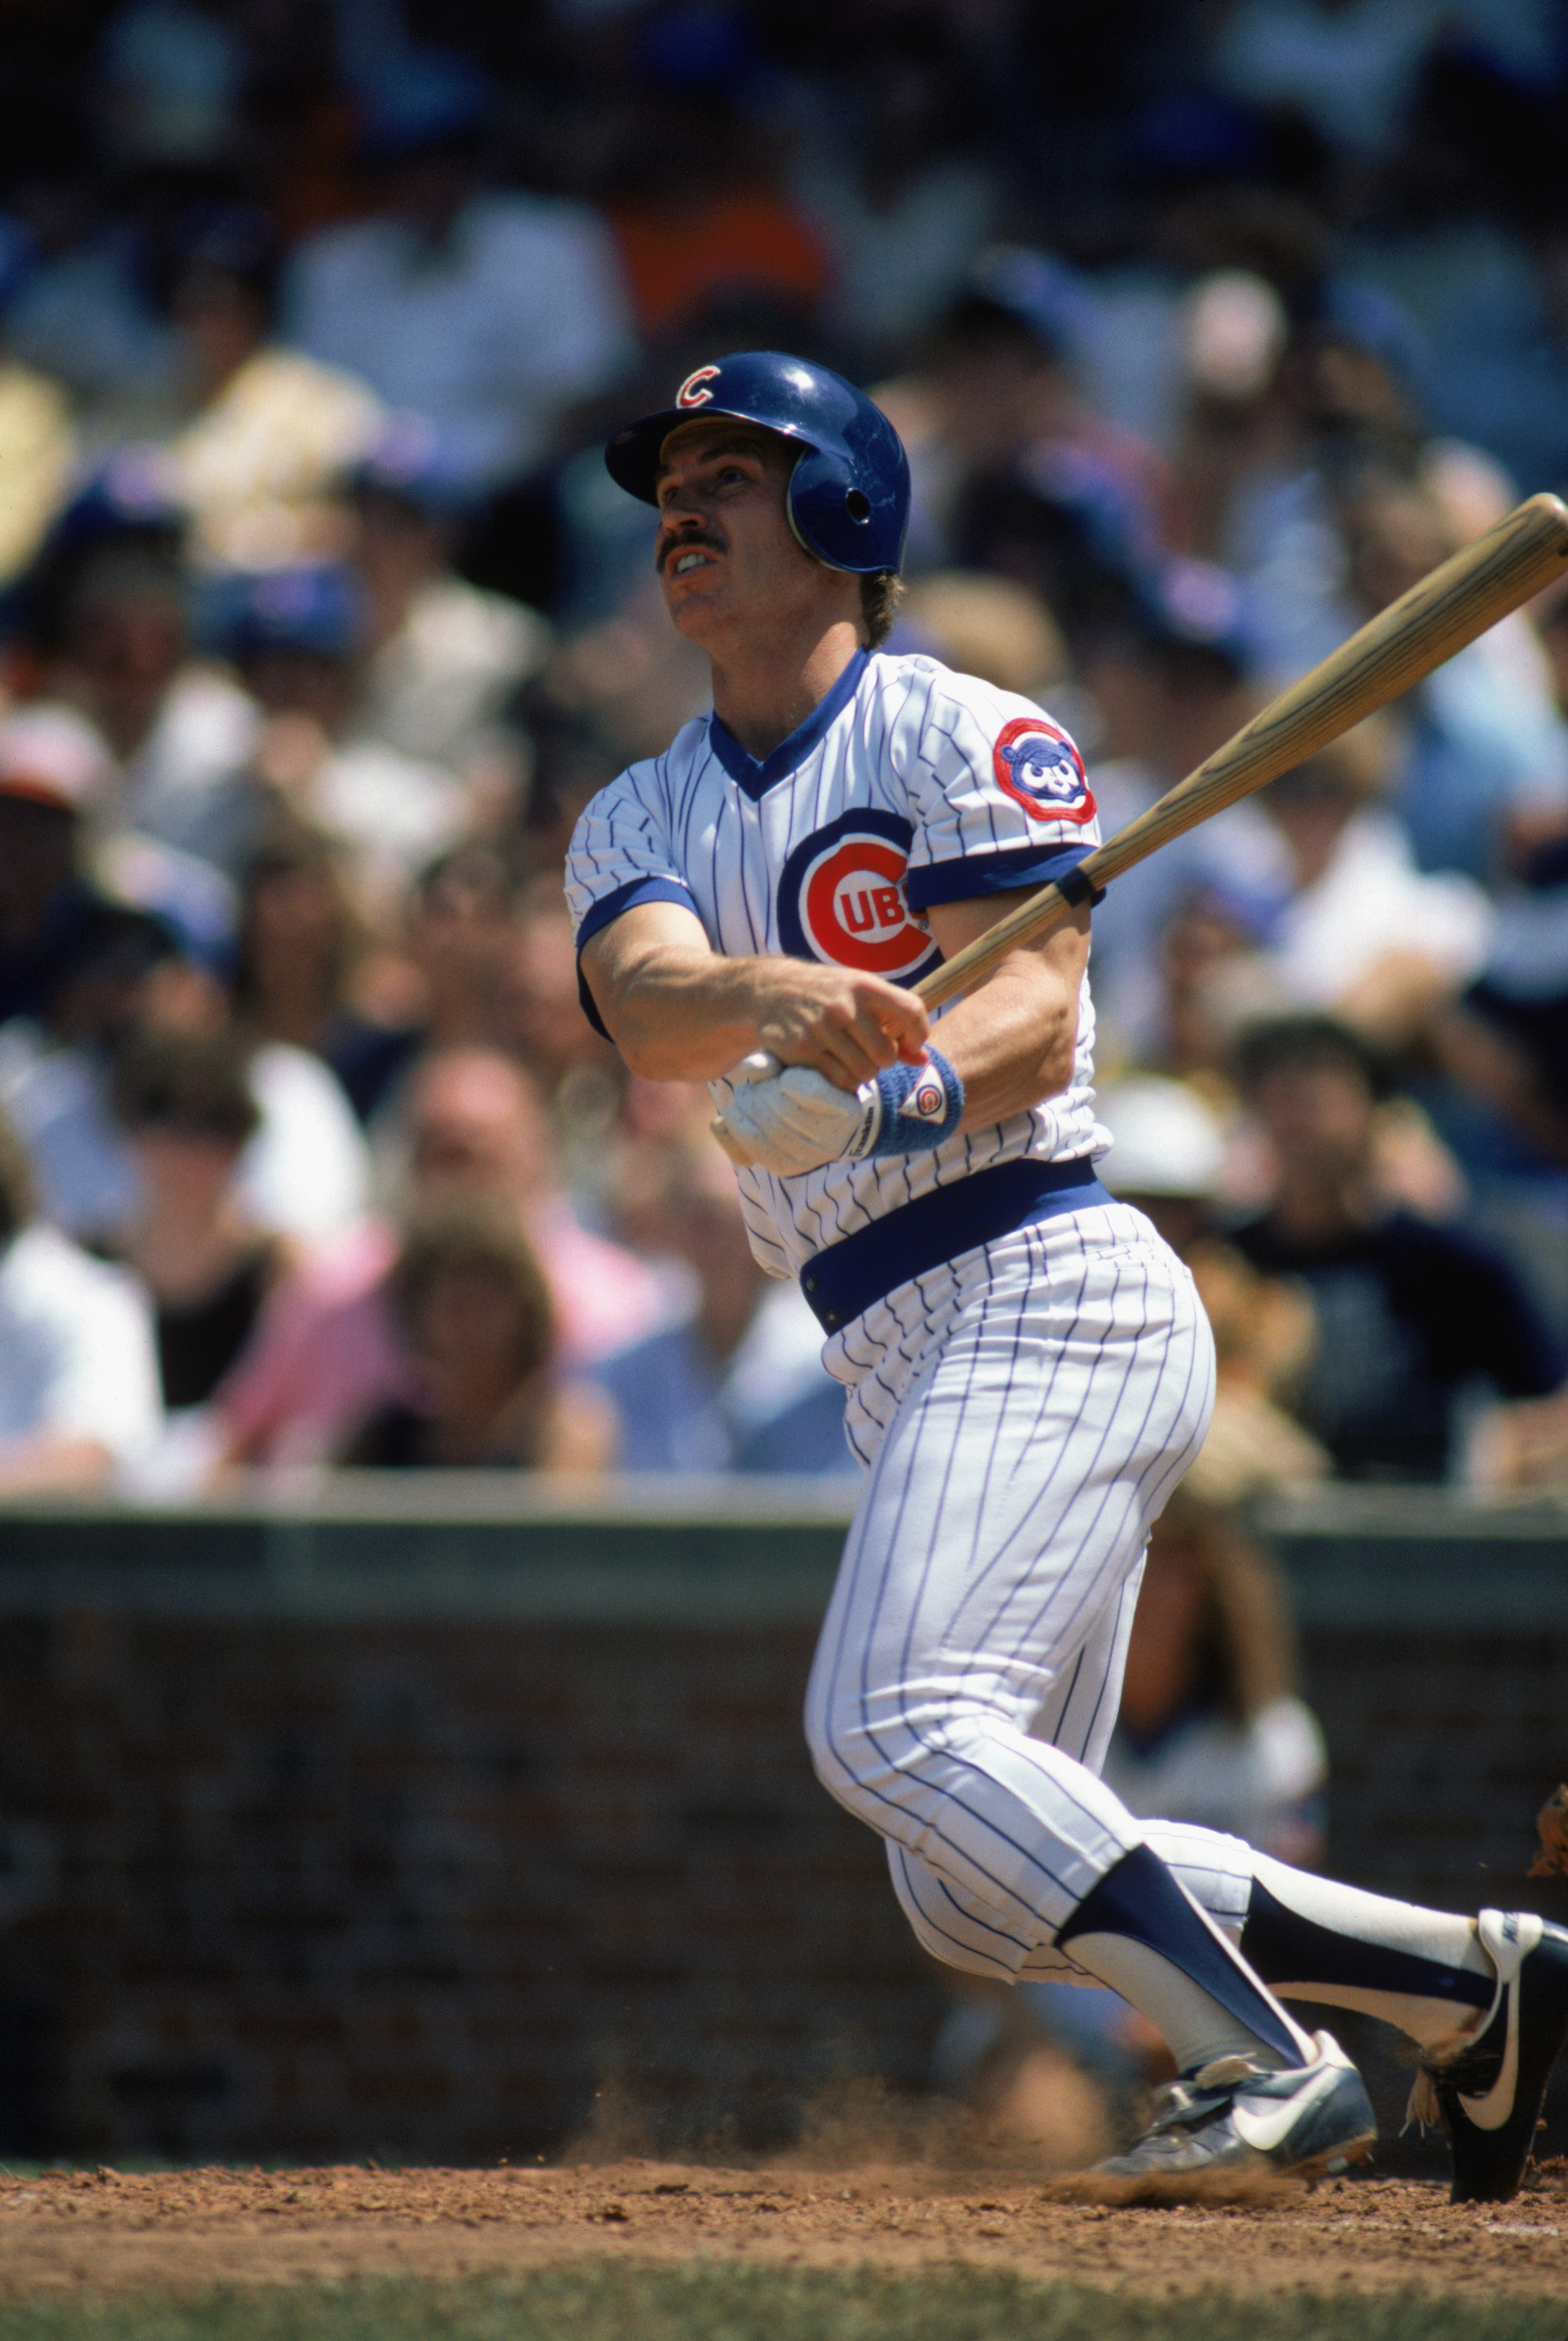 CHICAGO -1985:  Ron Cey #10 of the Chicago Cubs swings at the pitch during a game in the 1985 season at Wrigley Field in Chicago, Illinois .  (Photo by: Jonathan Daniel/Getty Images)